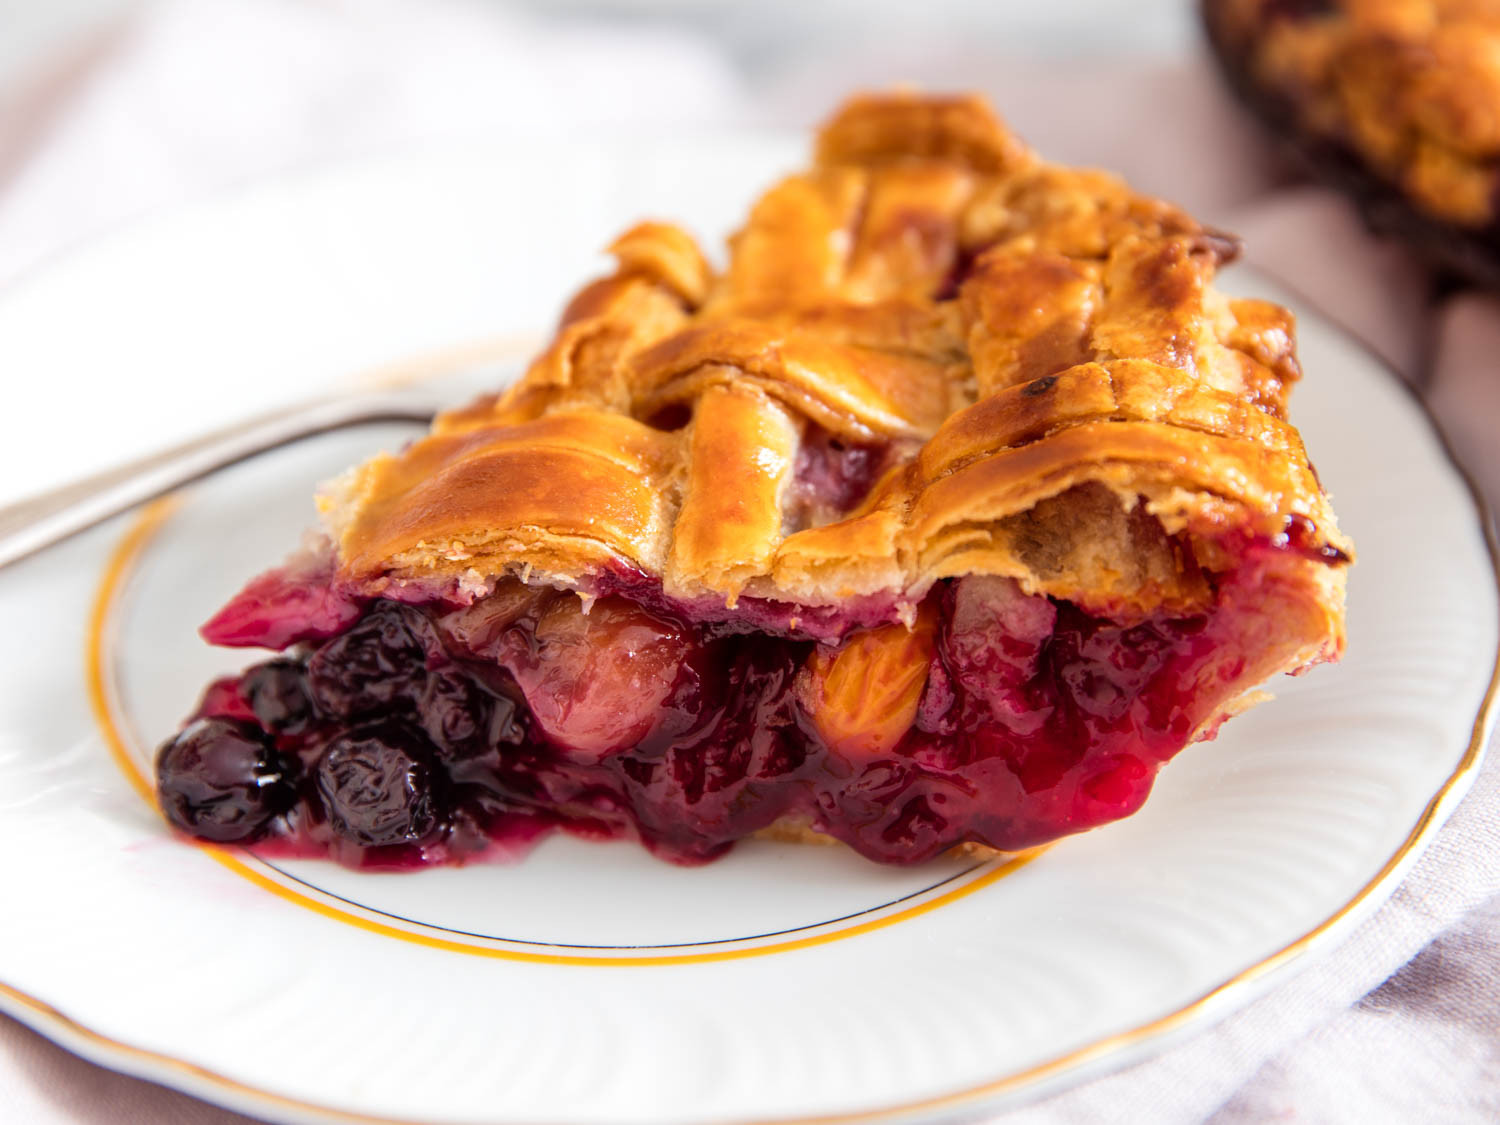 Fruit Pie Recipes  How to Make the Most of Late Summer Fruit With Pie